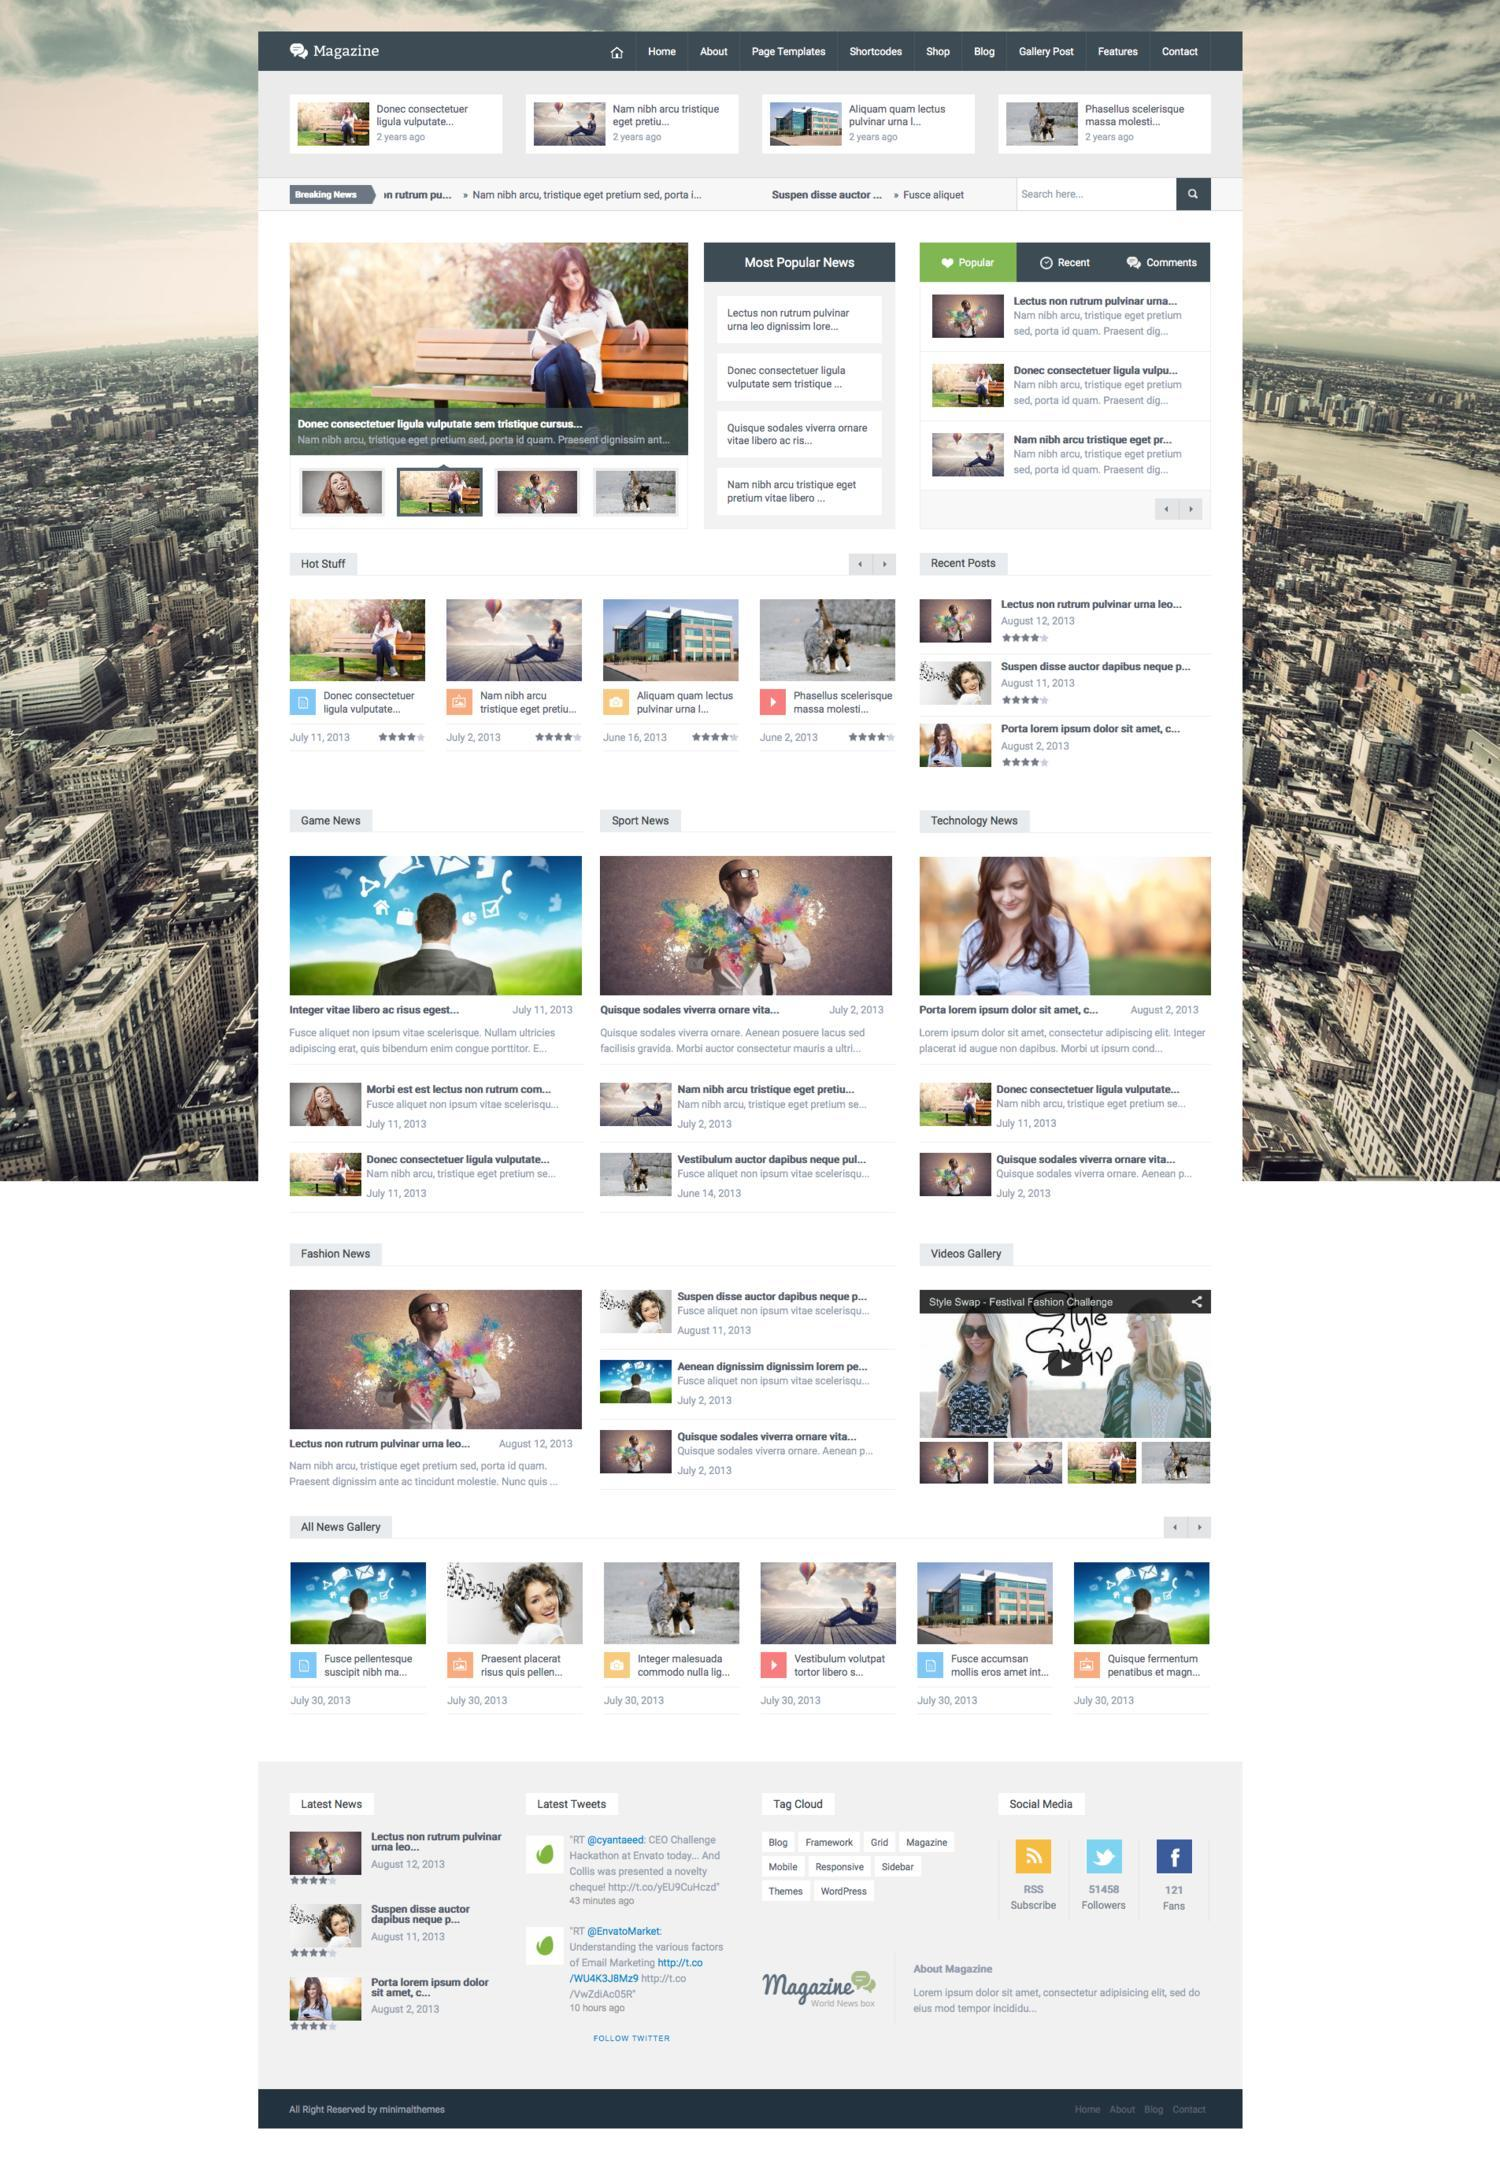 Full Website Design with Marketplace Standard by minimalthemes - 108697